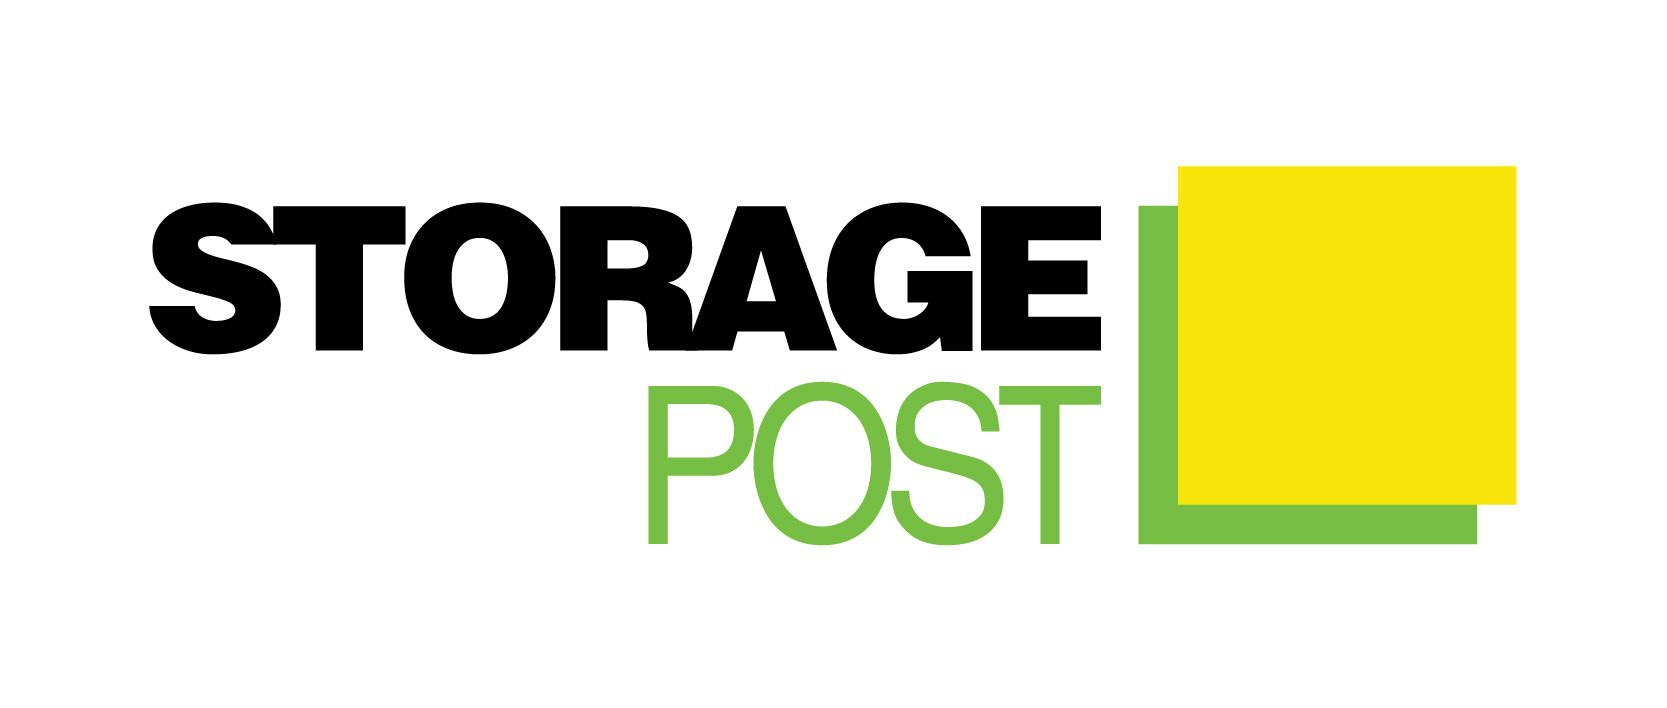 Storage Post Logo